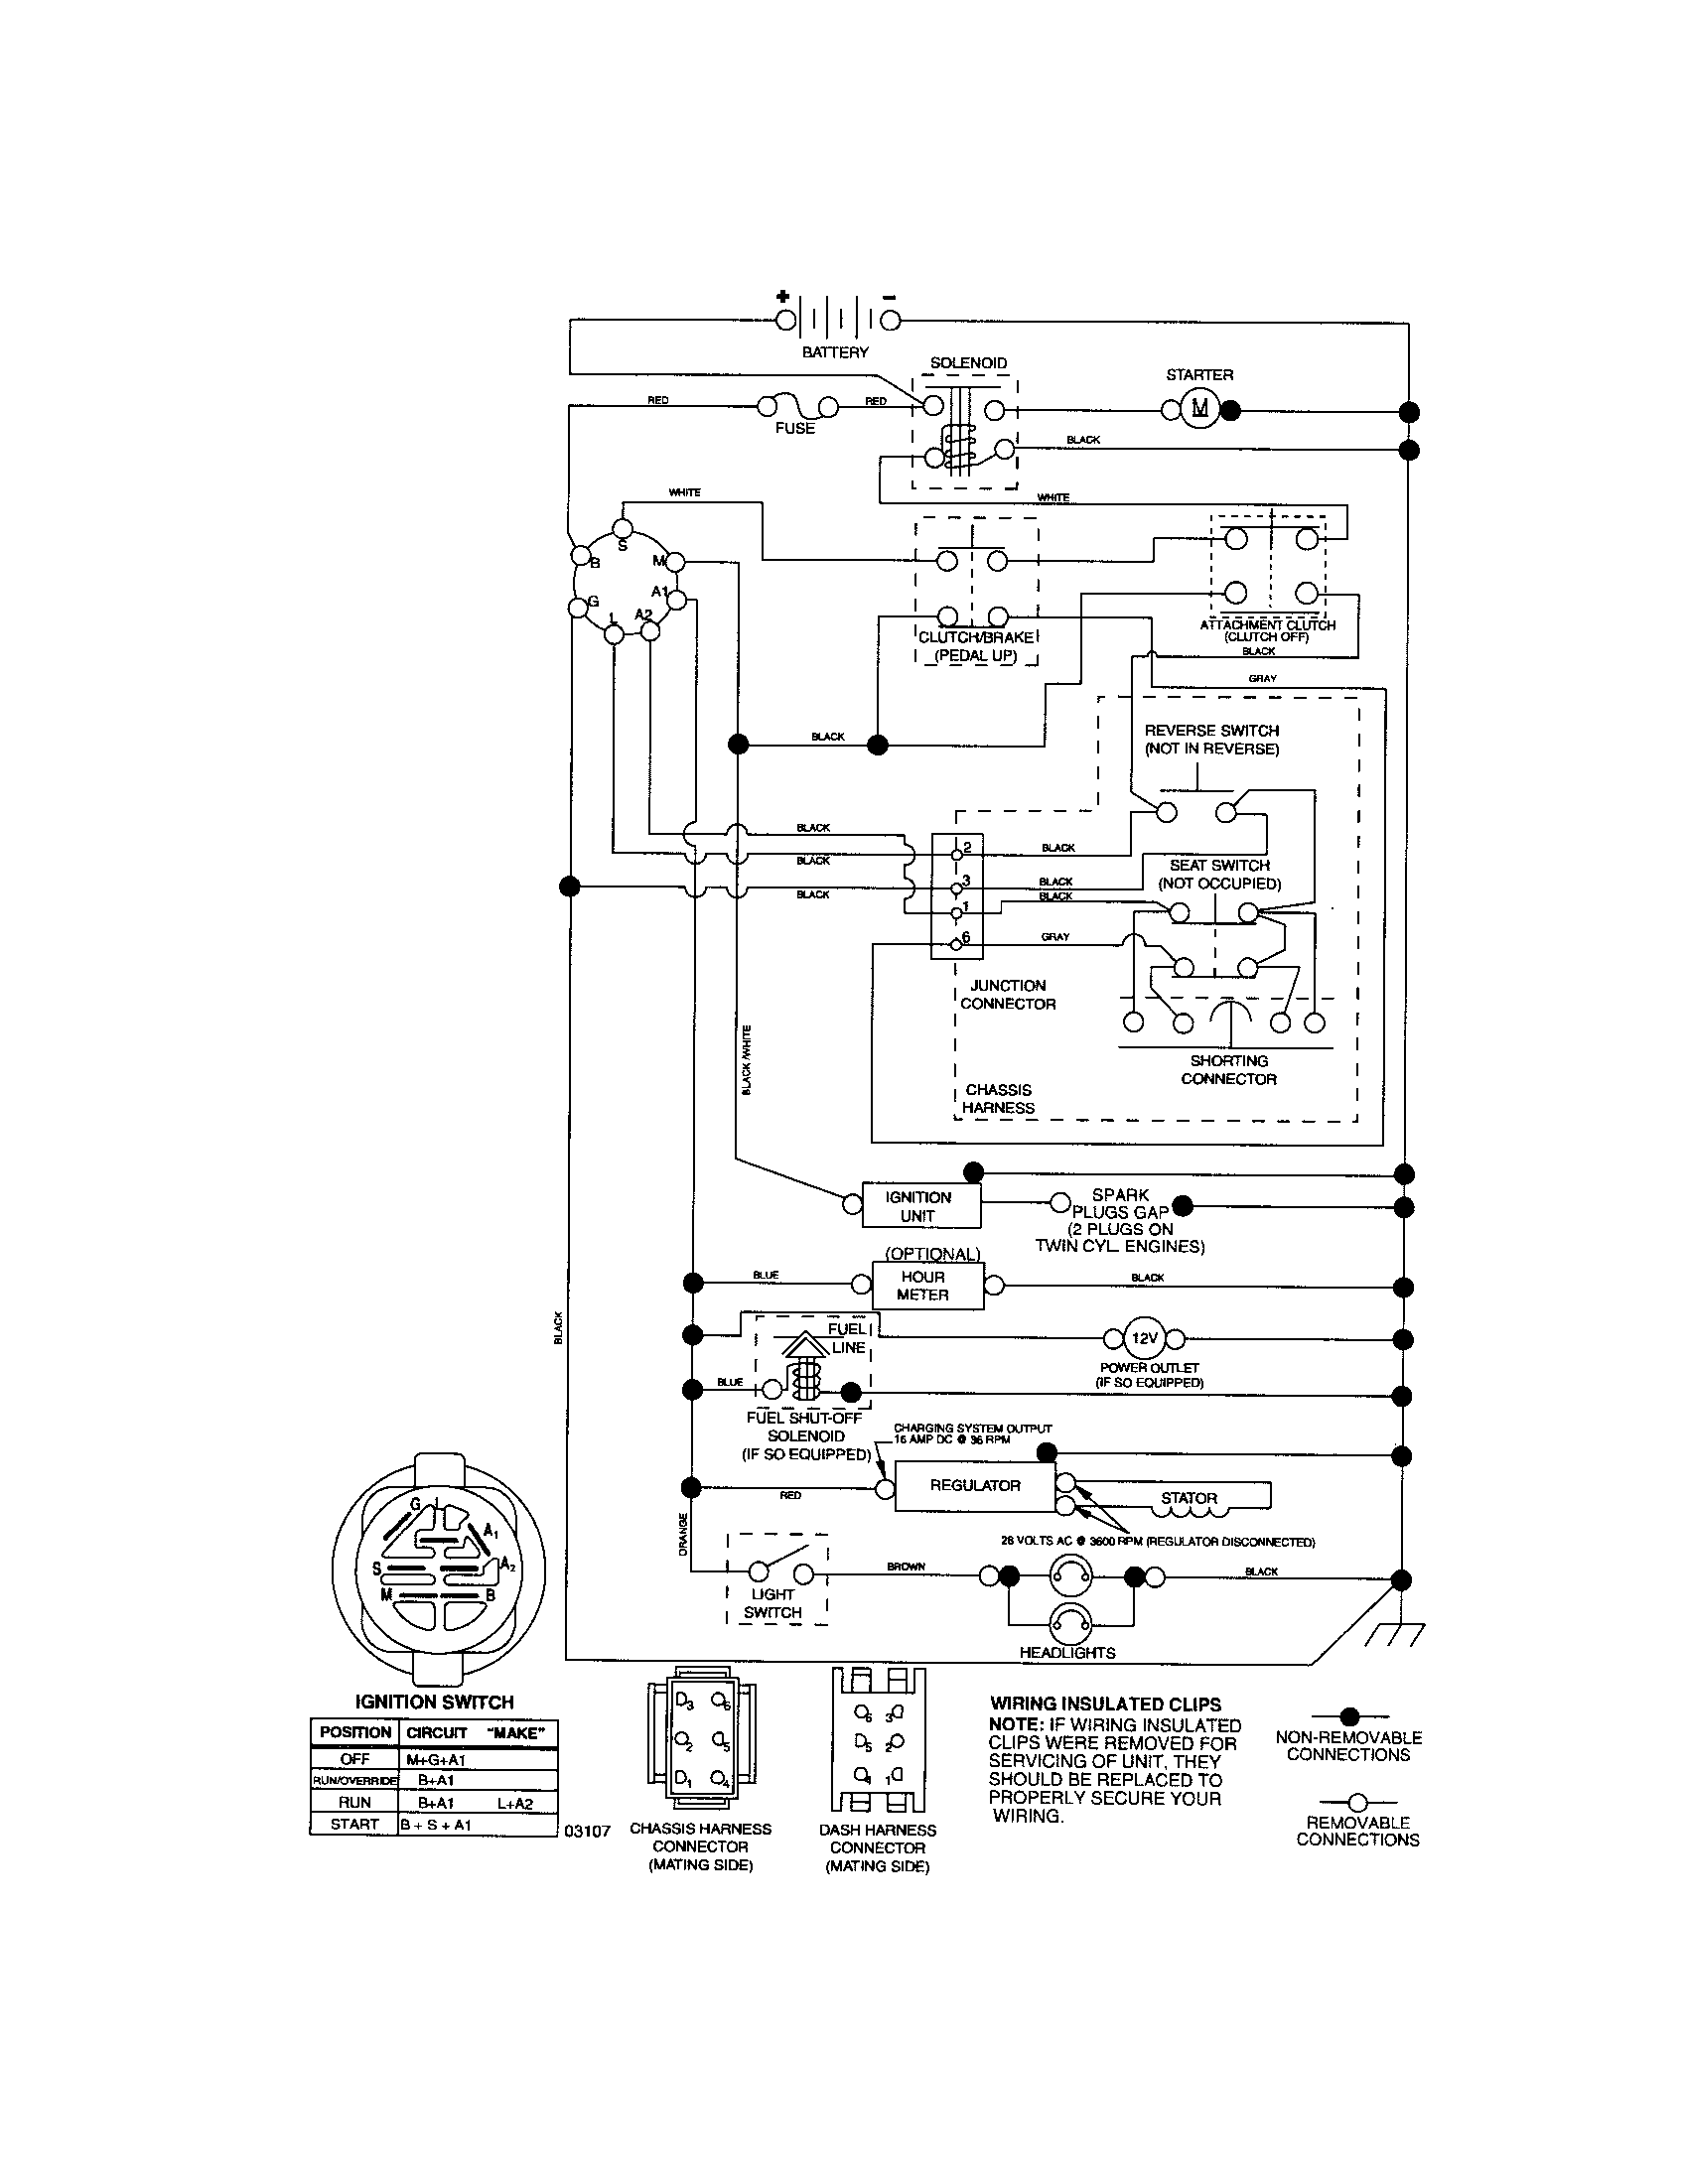 6af5f1447fd13c8443376822ddc1e105 craftsman riding mower electrical diagram wiring diagram wiring diagram for murray riding lawn mower solenoid at et-consult.org